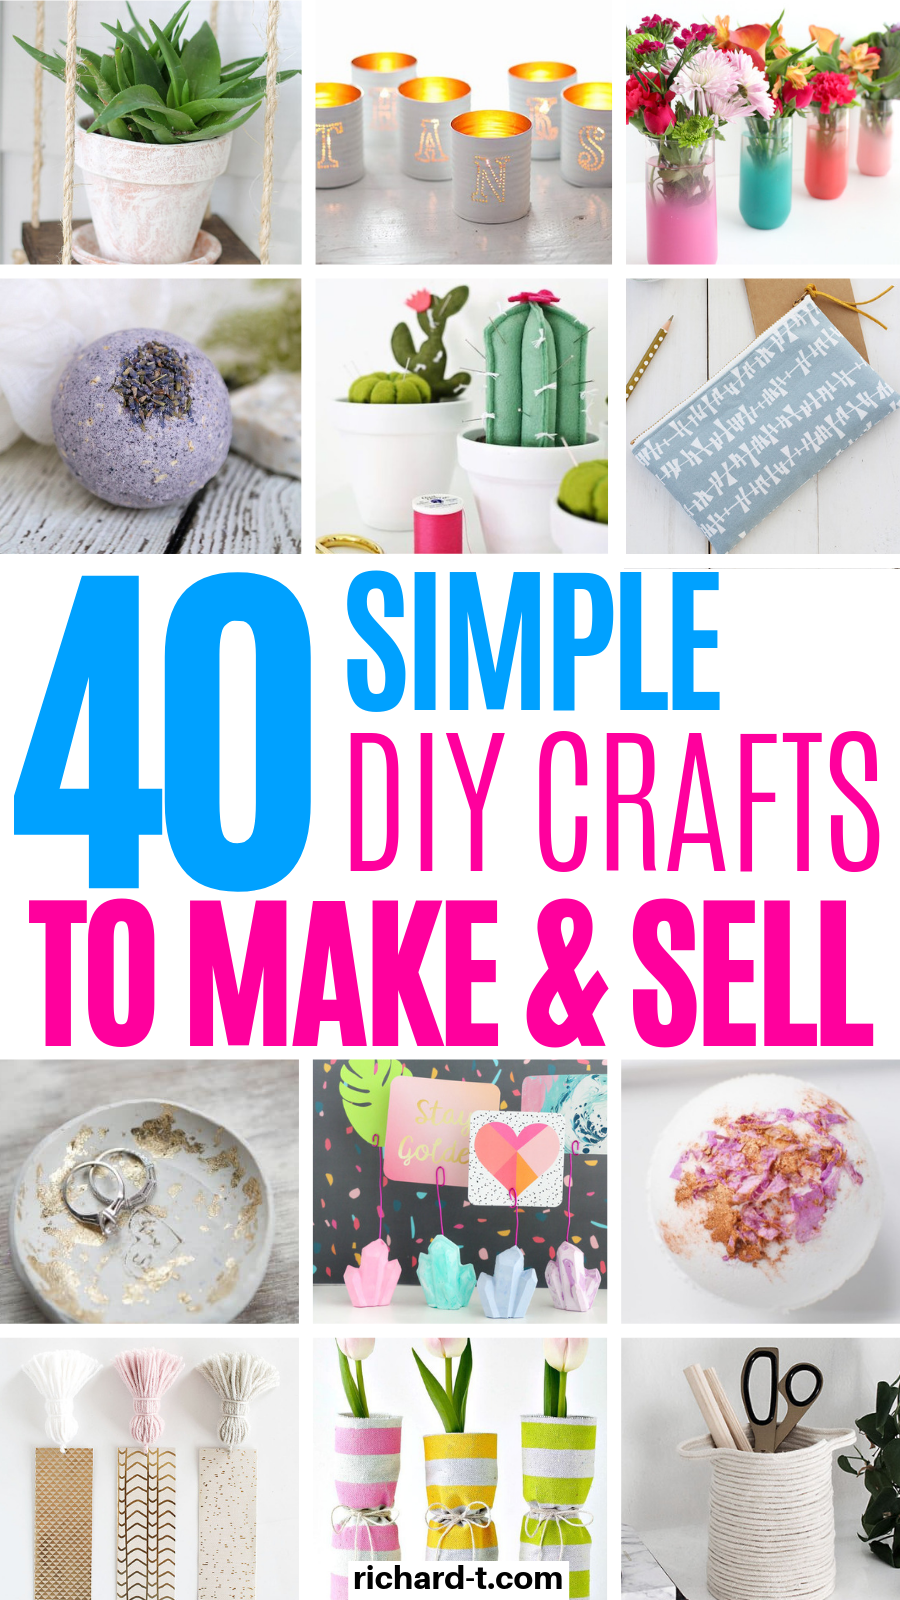 40 DIY Crafts To Make & Sell For Money #craftstomakeandsell